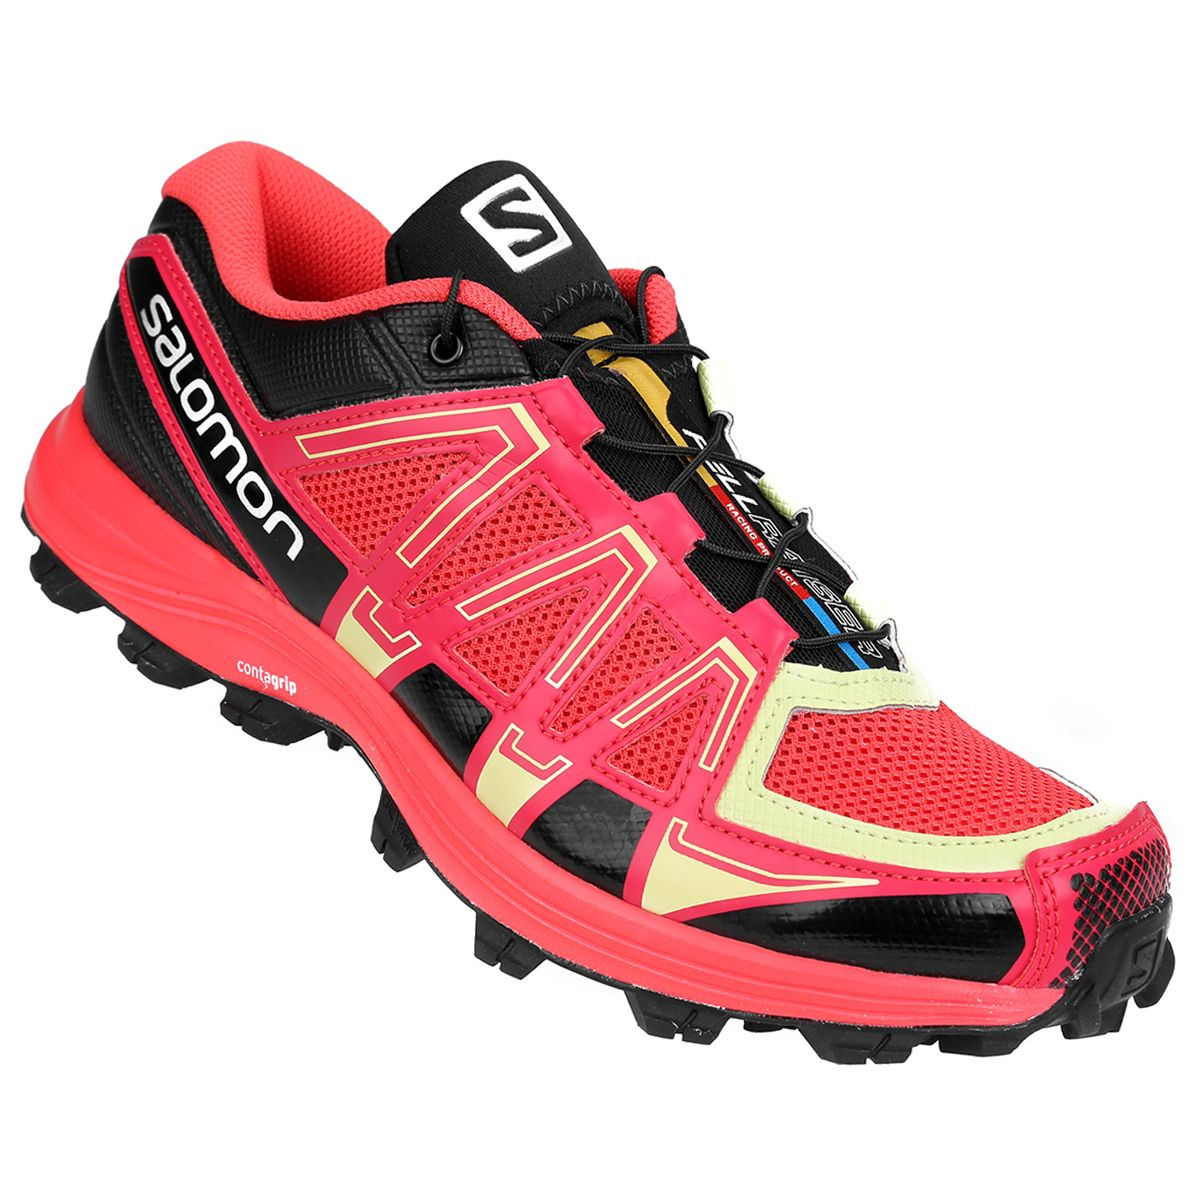 Zapatillas Salomon Fellraiser Rojo e Verde  0893f18d22